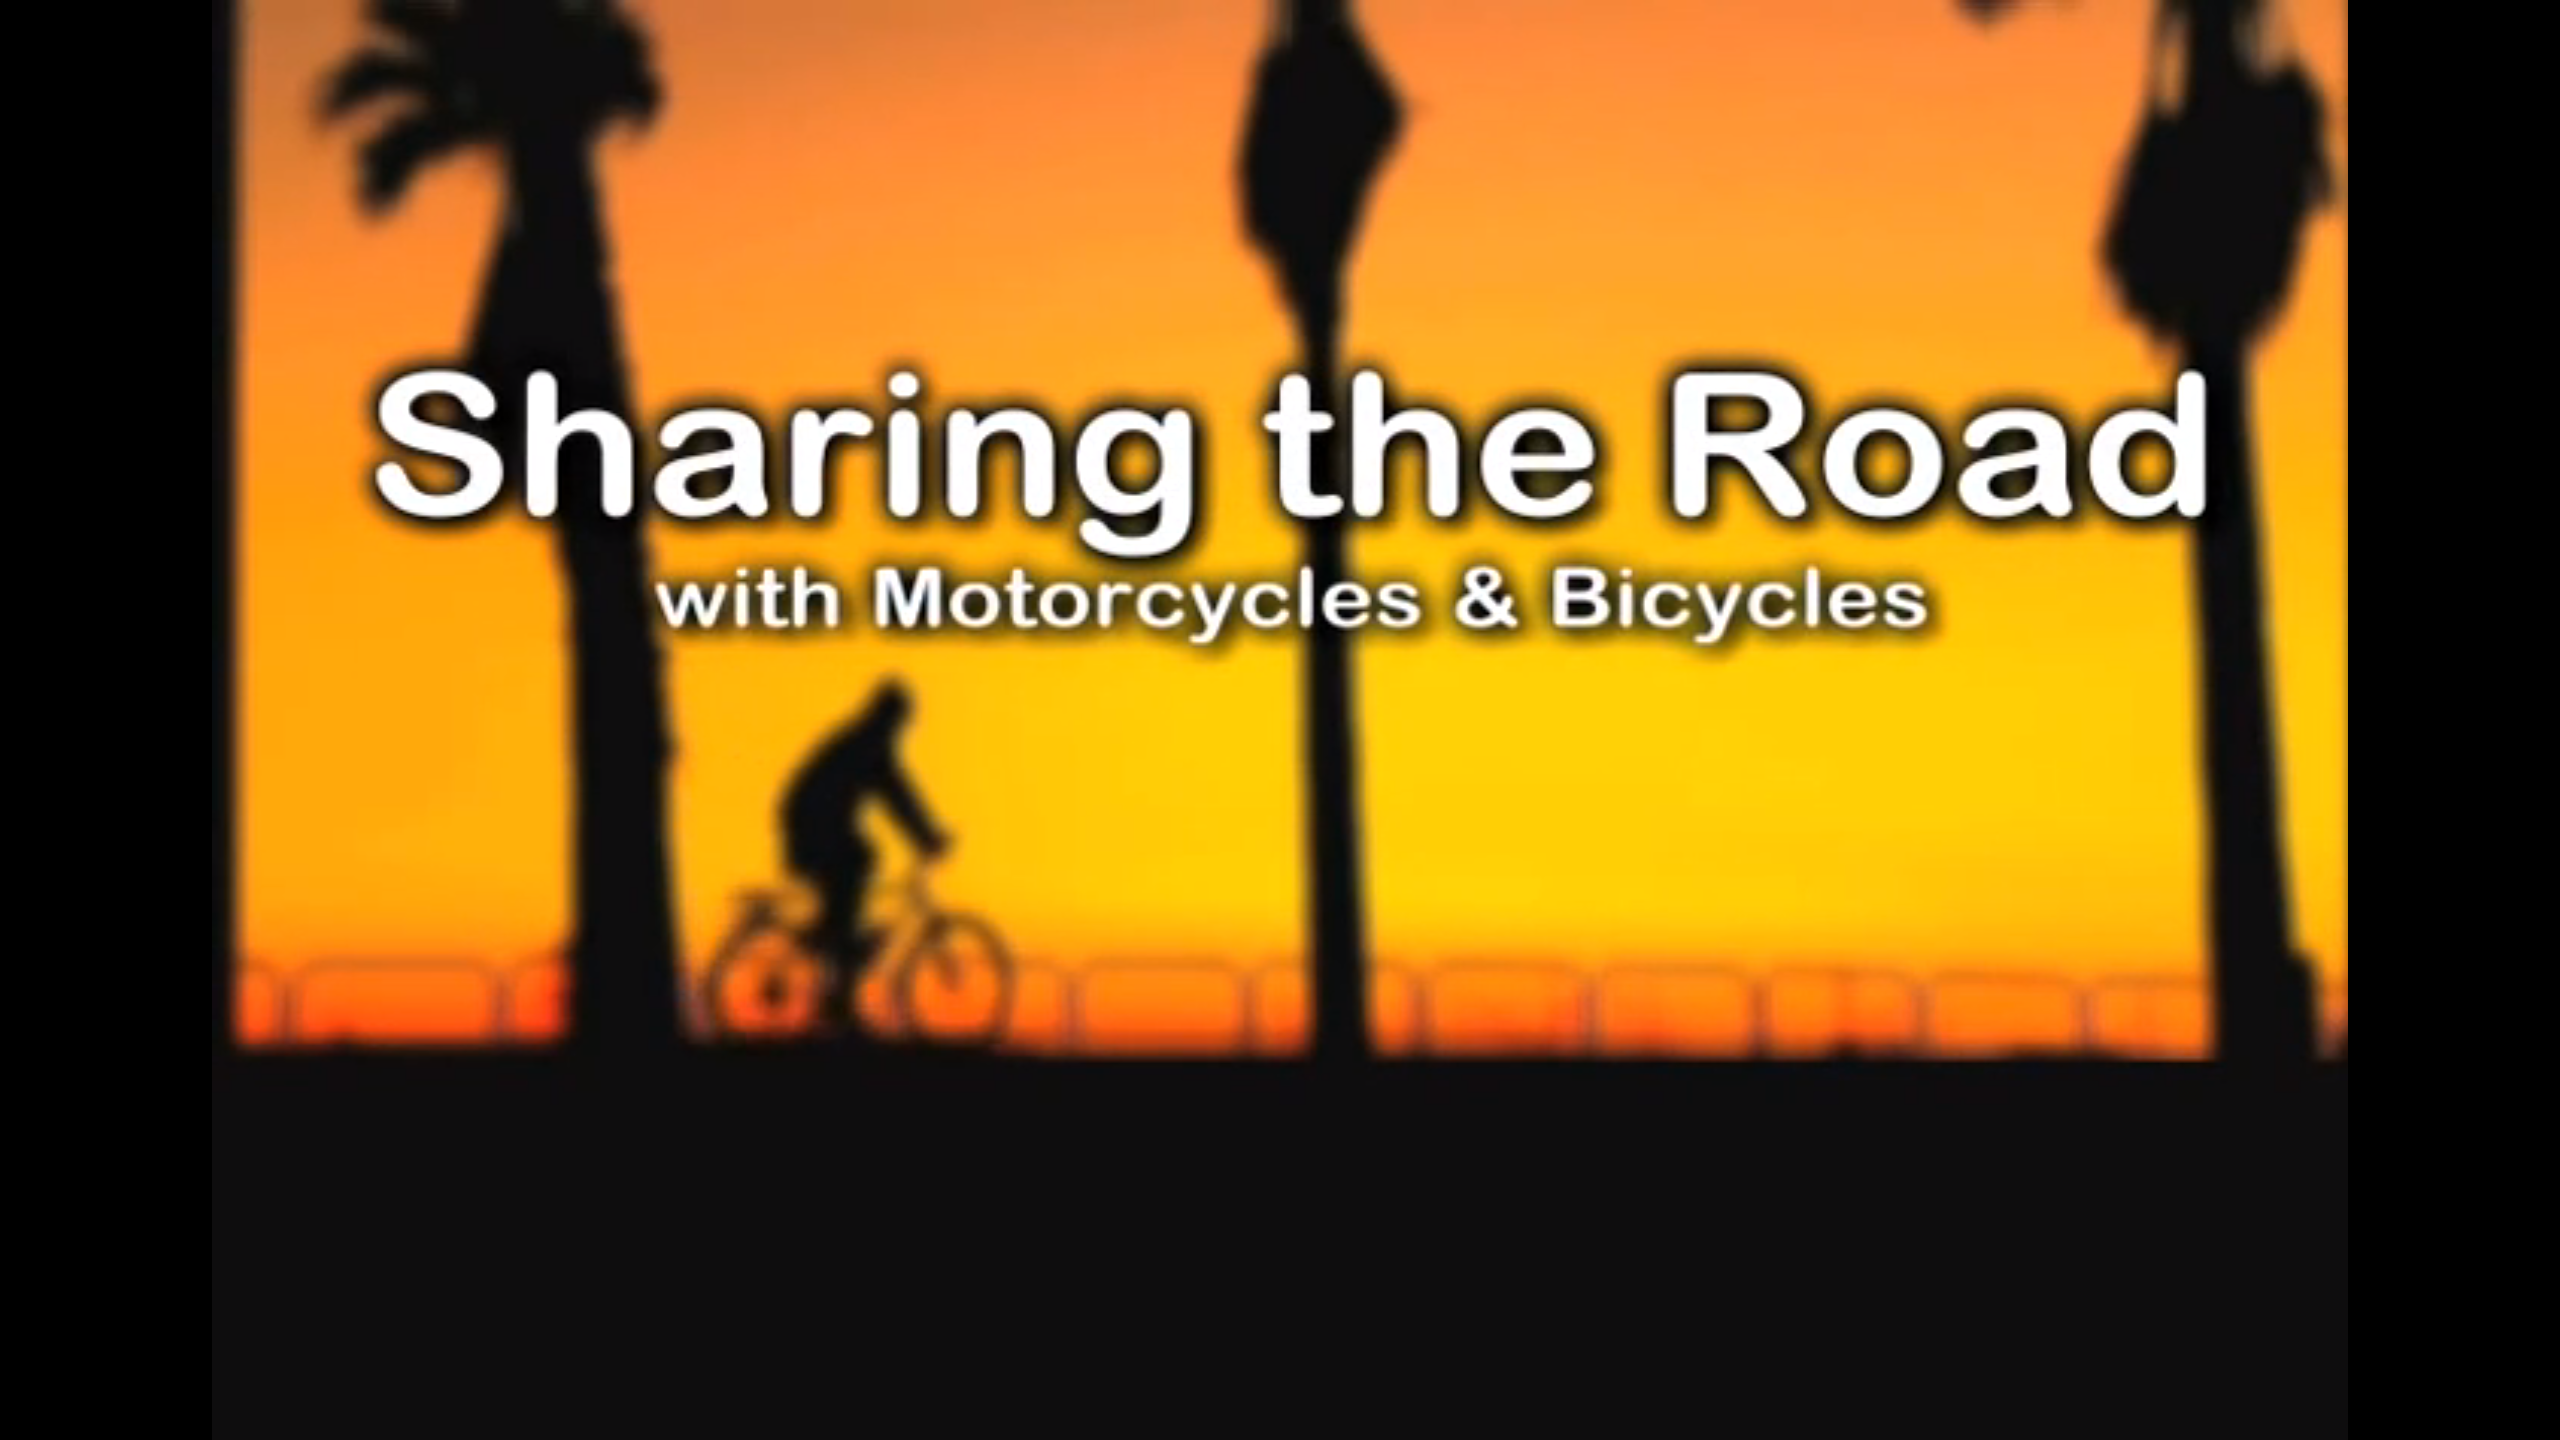 Sharing the Road With Motorcycles and Bicycles